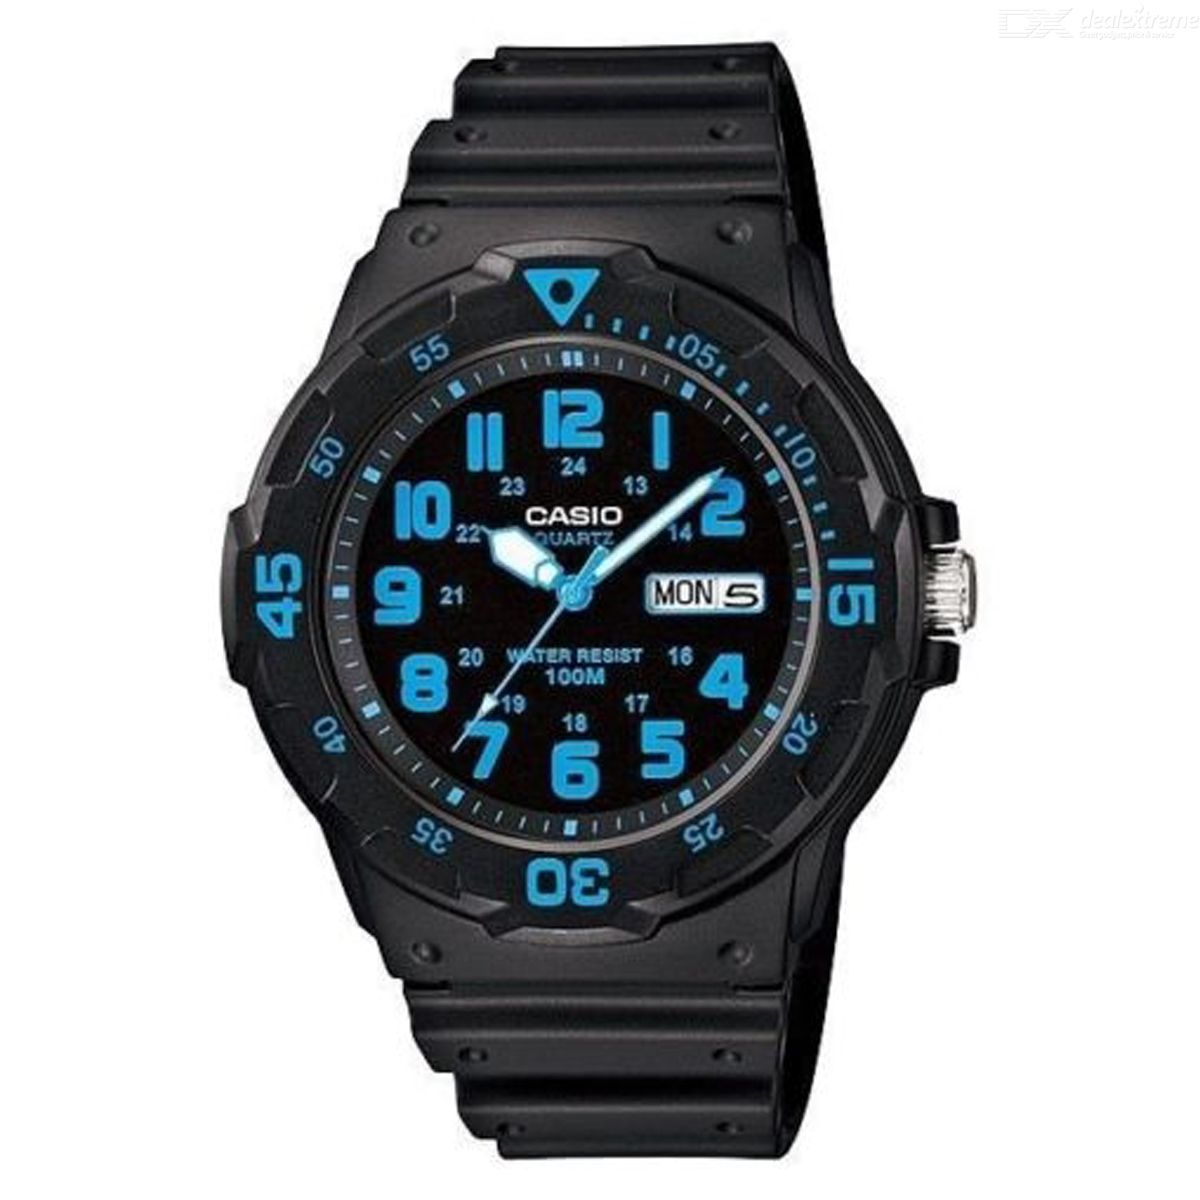 CASIO MRW-200H-2BVDF Men's Analog Watch - Black + Blue (Without Box)